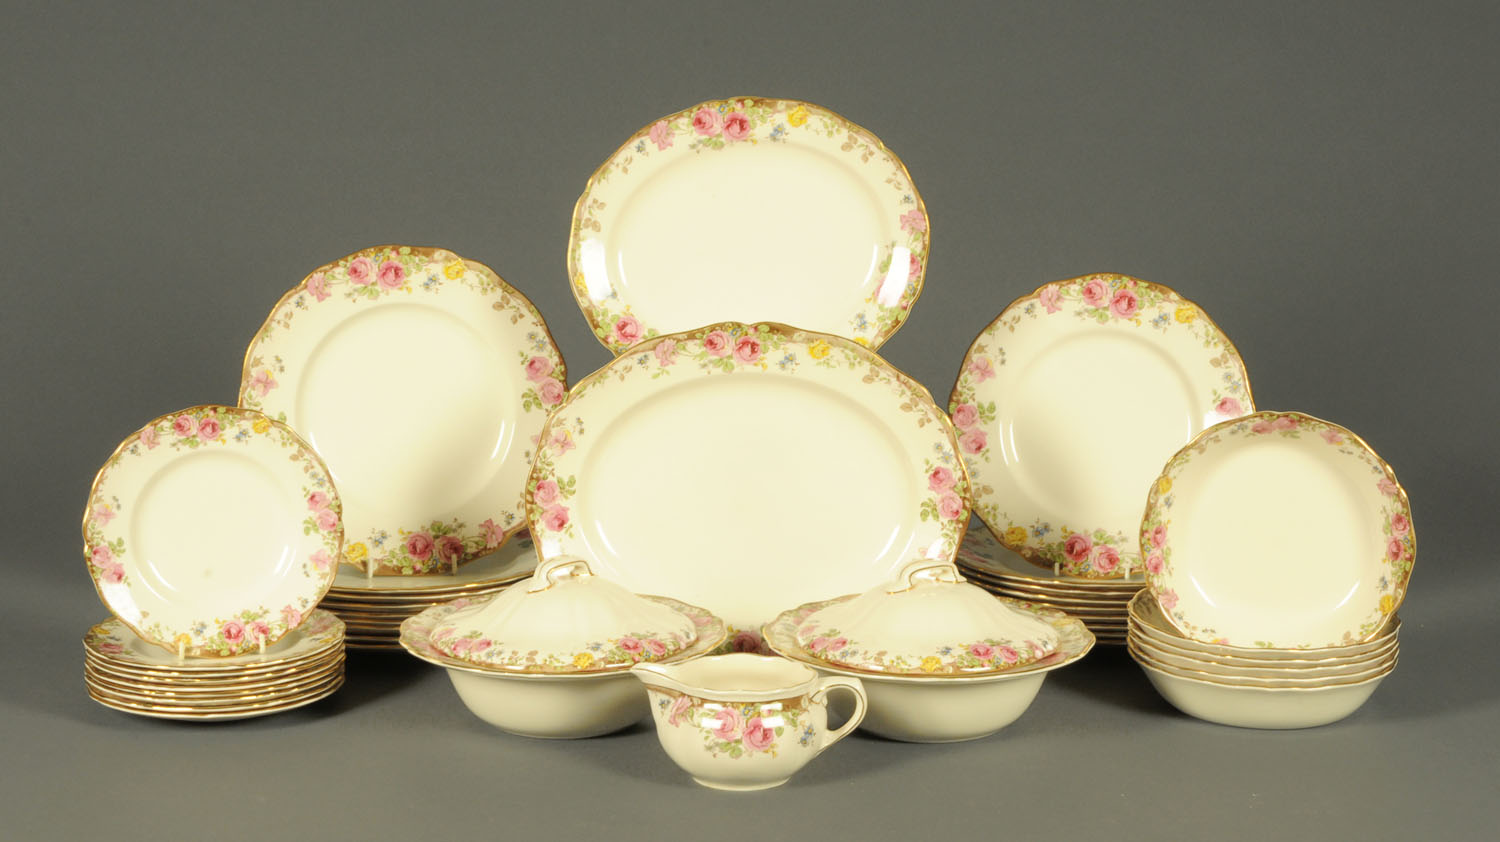 Lot 9 - A Royal Doulton English Rose patterned part dinner service, 9 dinner plates, 9 medium plates,